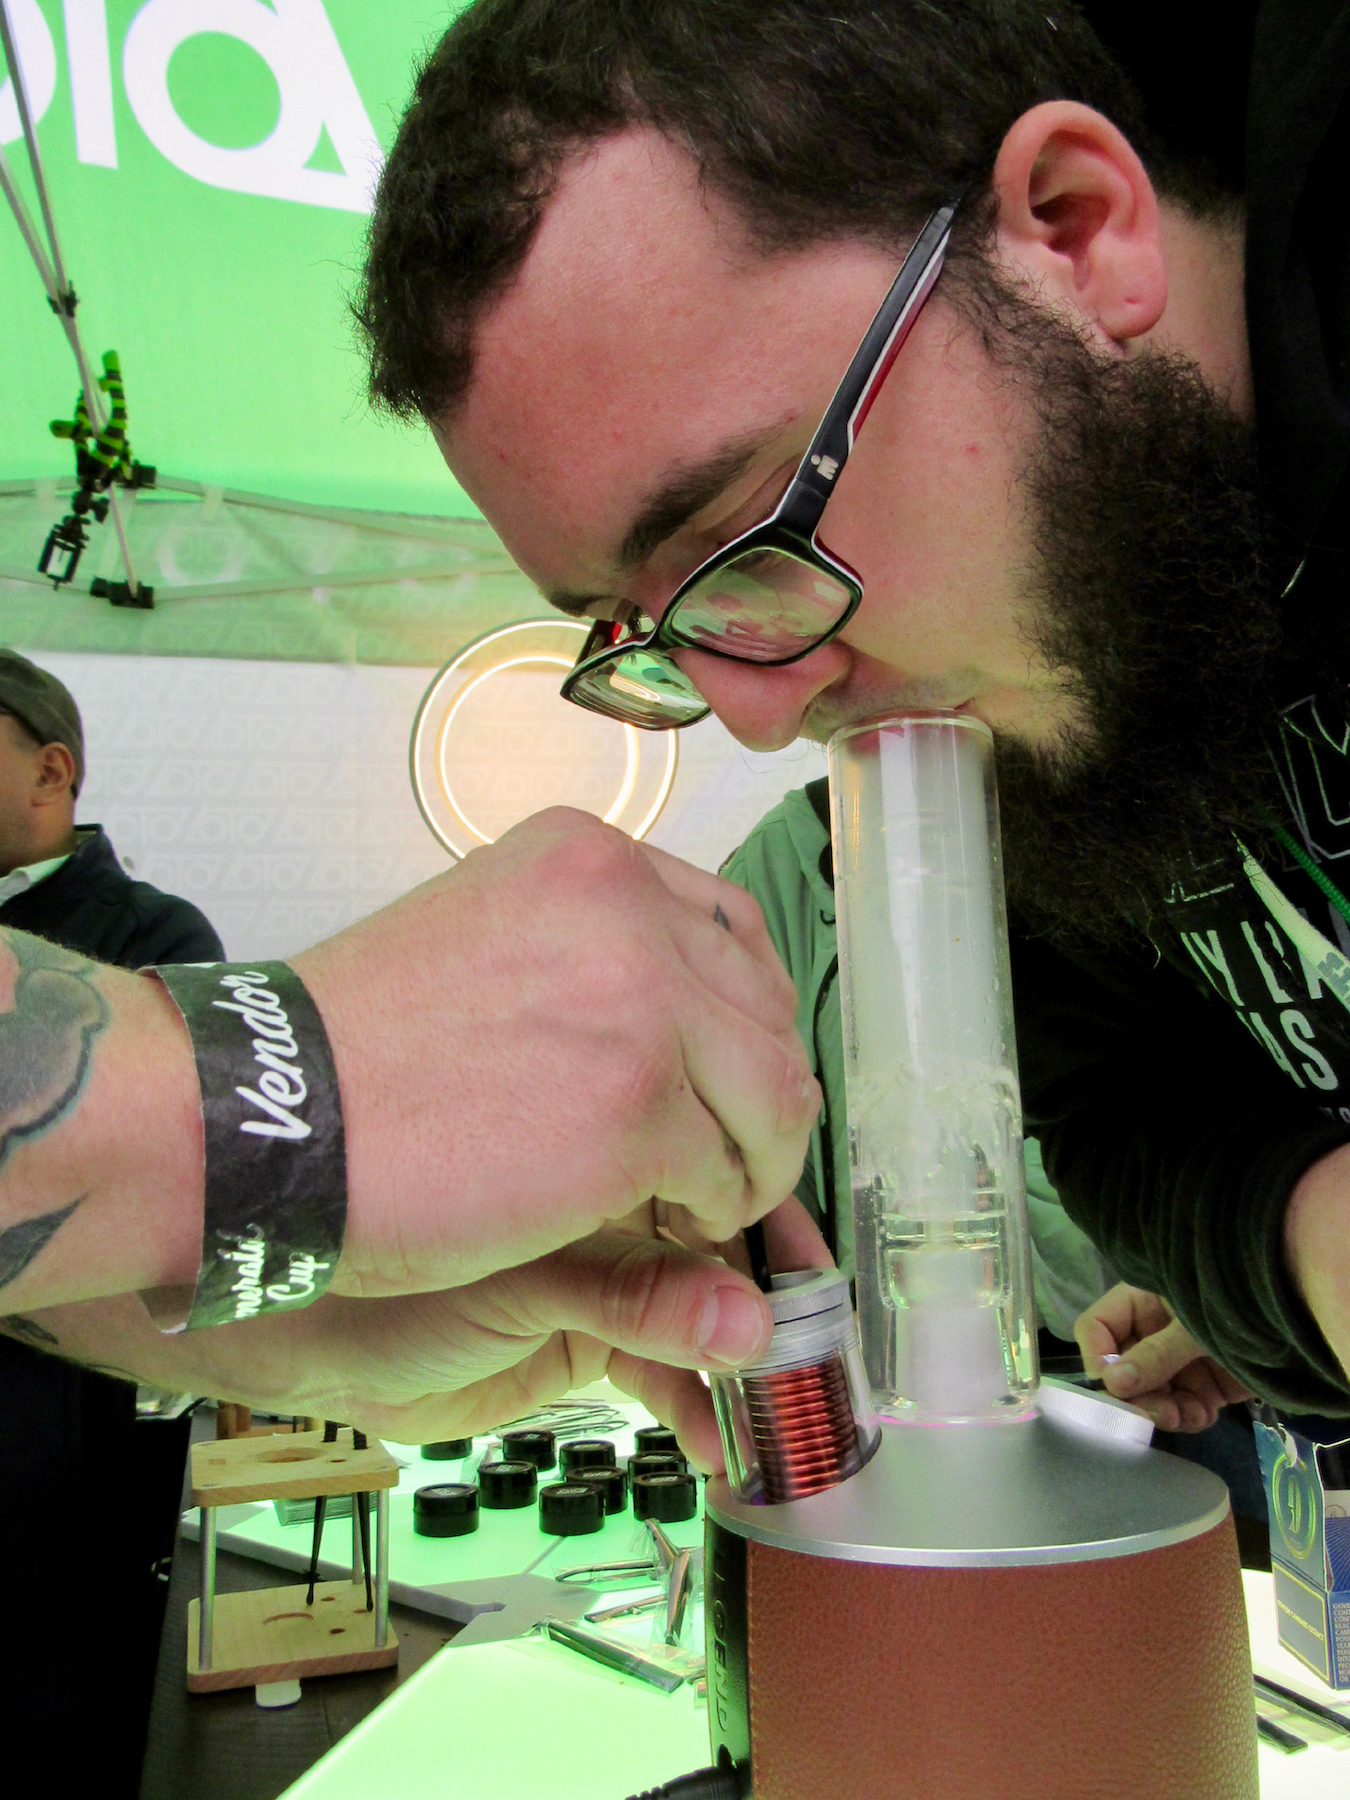 Wookie Tech: A contestant hits hash vapor from the new, $400, Loto Legend magnetic induction dab rig, which debuted at the Cup. (David Downs/Leafly)